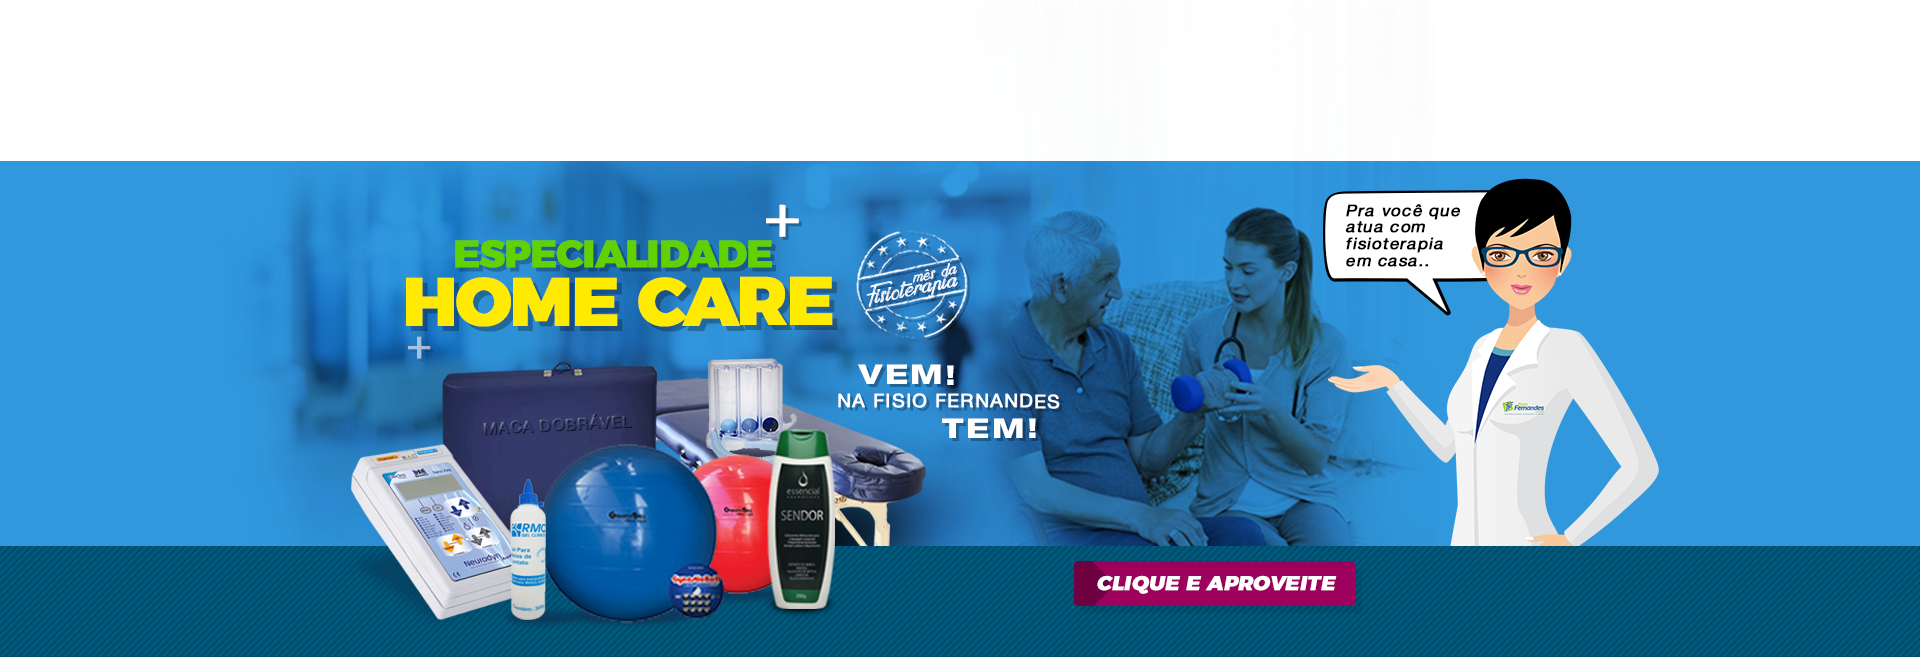 especialidades- home care